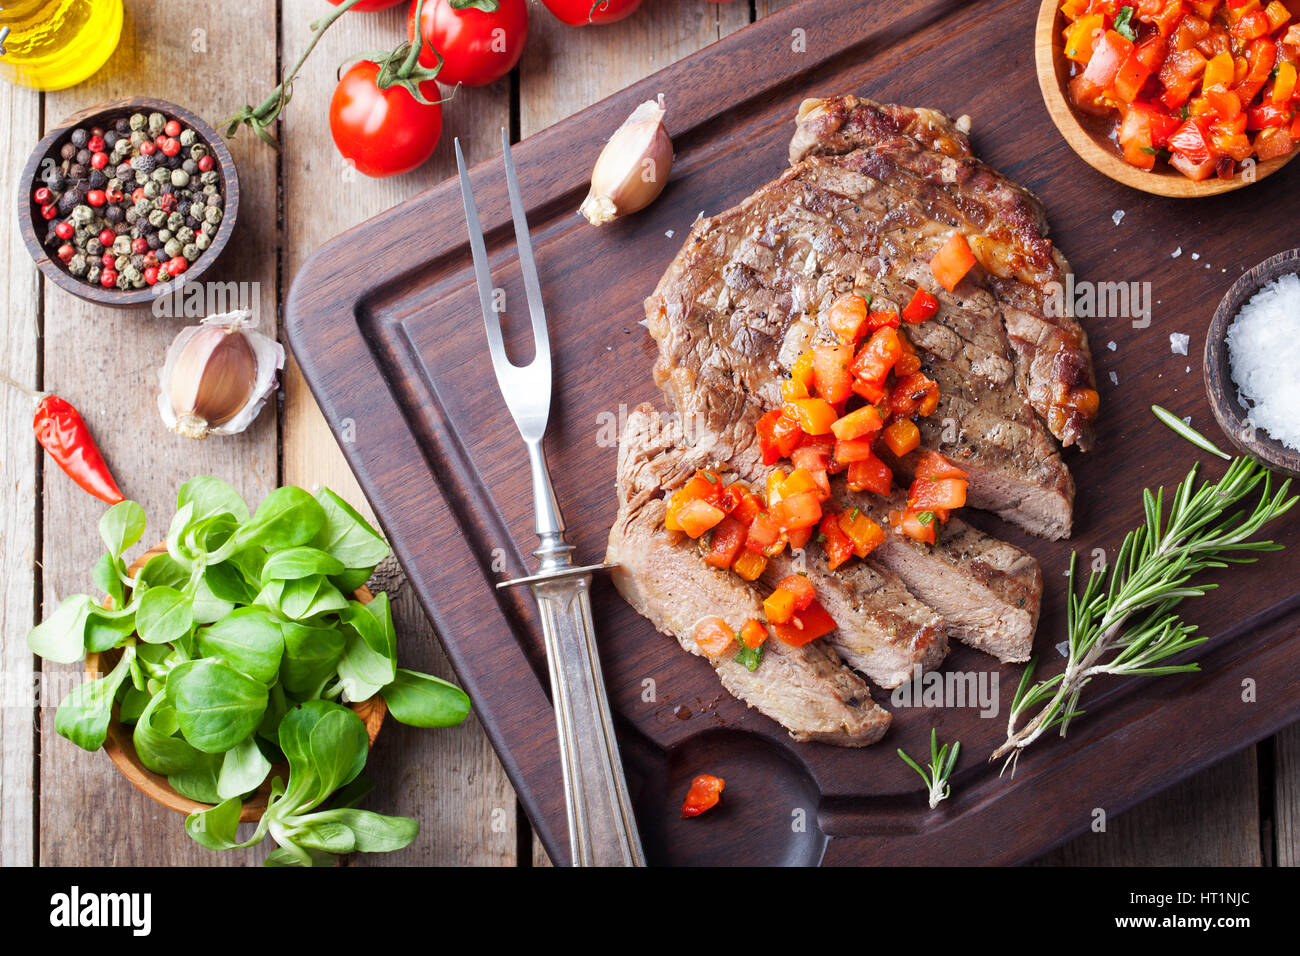 Beef steak well done with tomato and pepper salsa on a wooden background - Stock Image